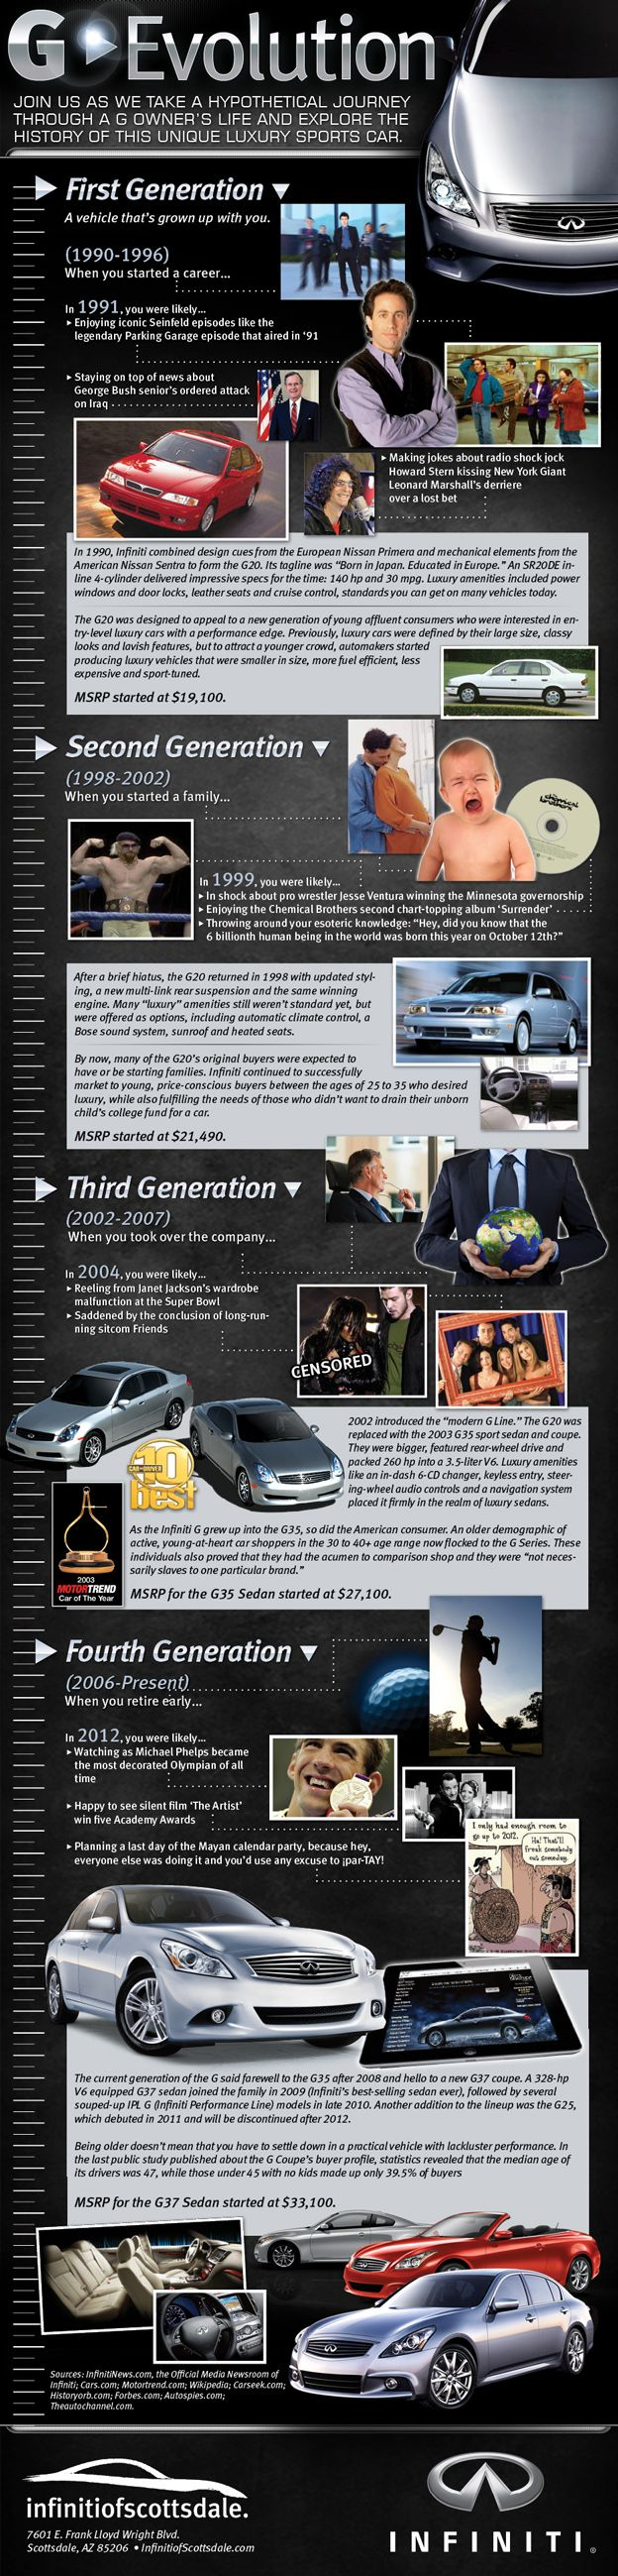 AUTOMOTIVE INFOGRAPHICS: THE HISTORY & EVOLUTION OF THE INFINITI G AND ITS BUYER